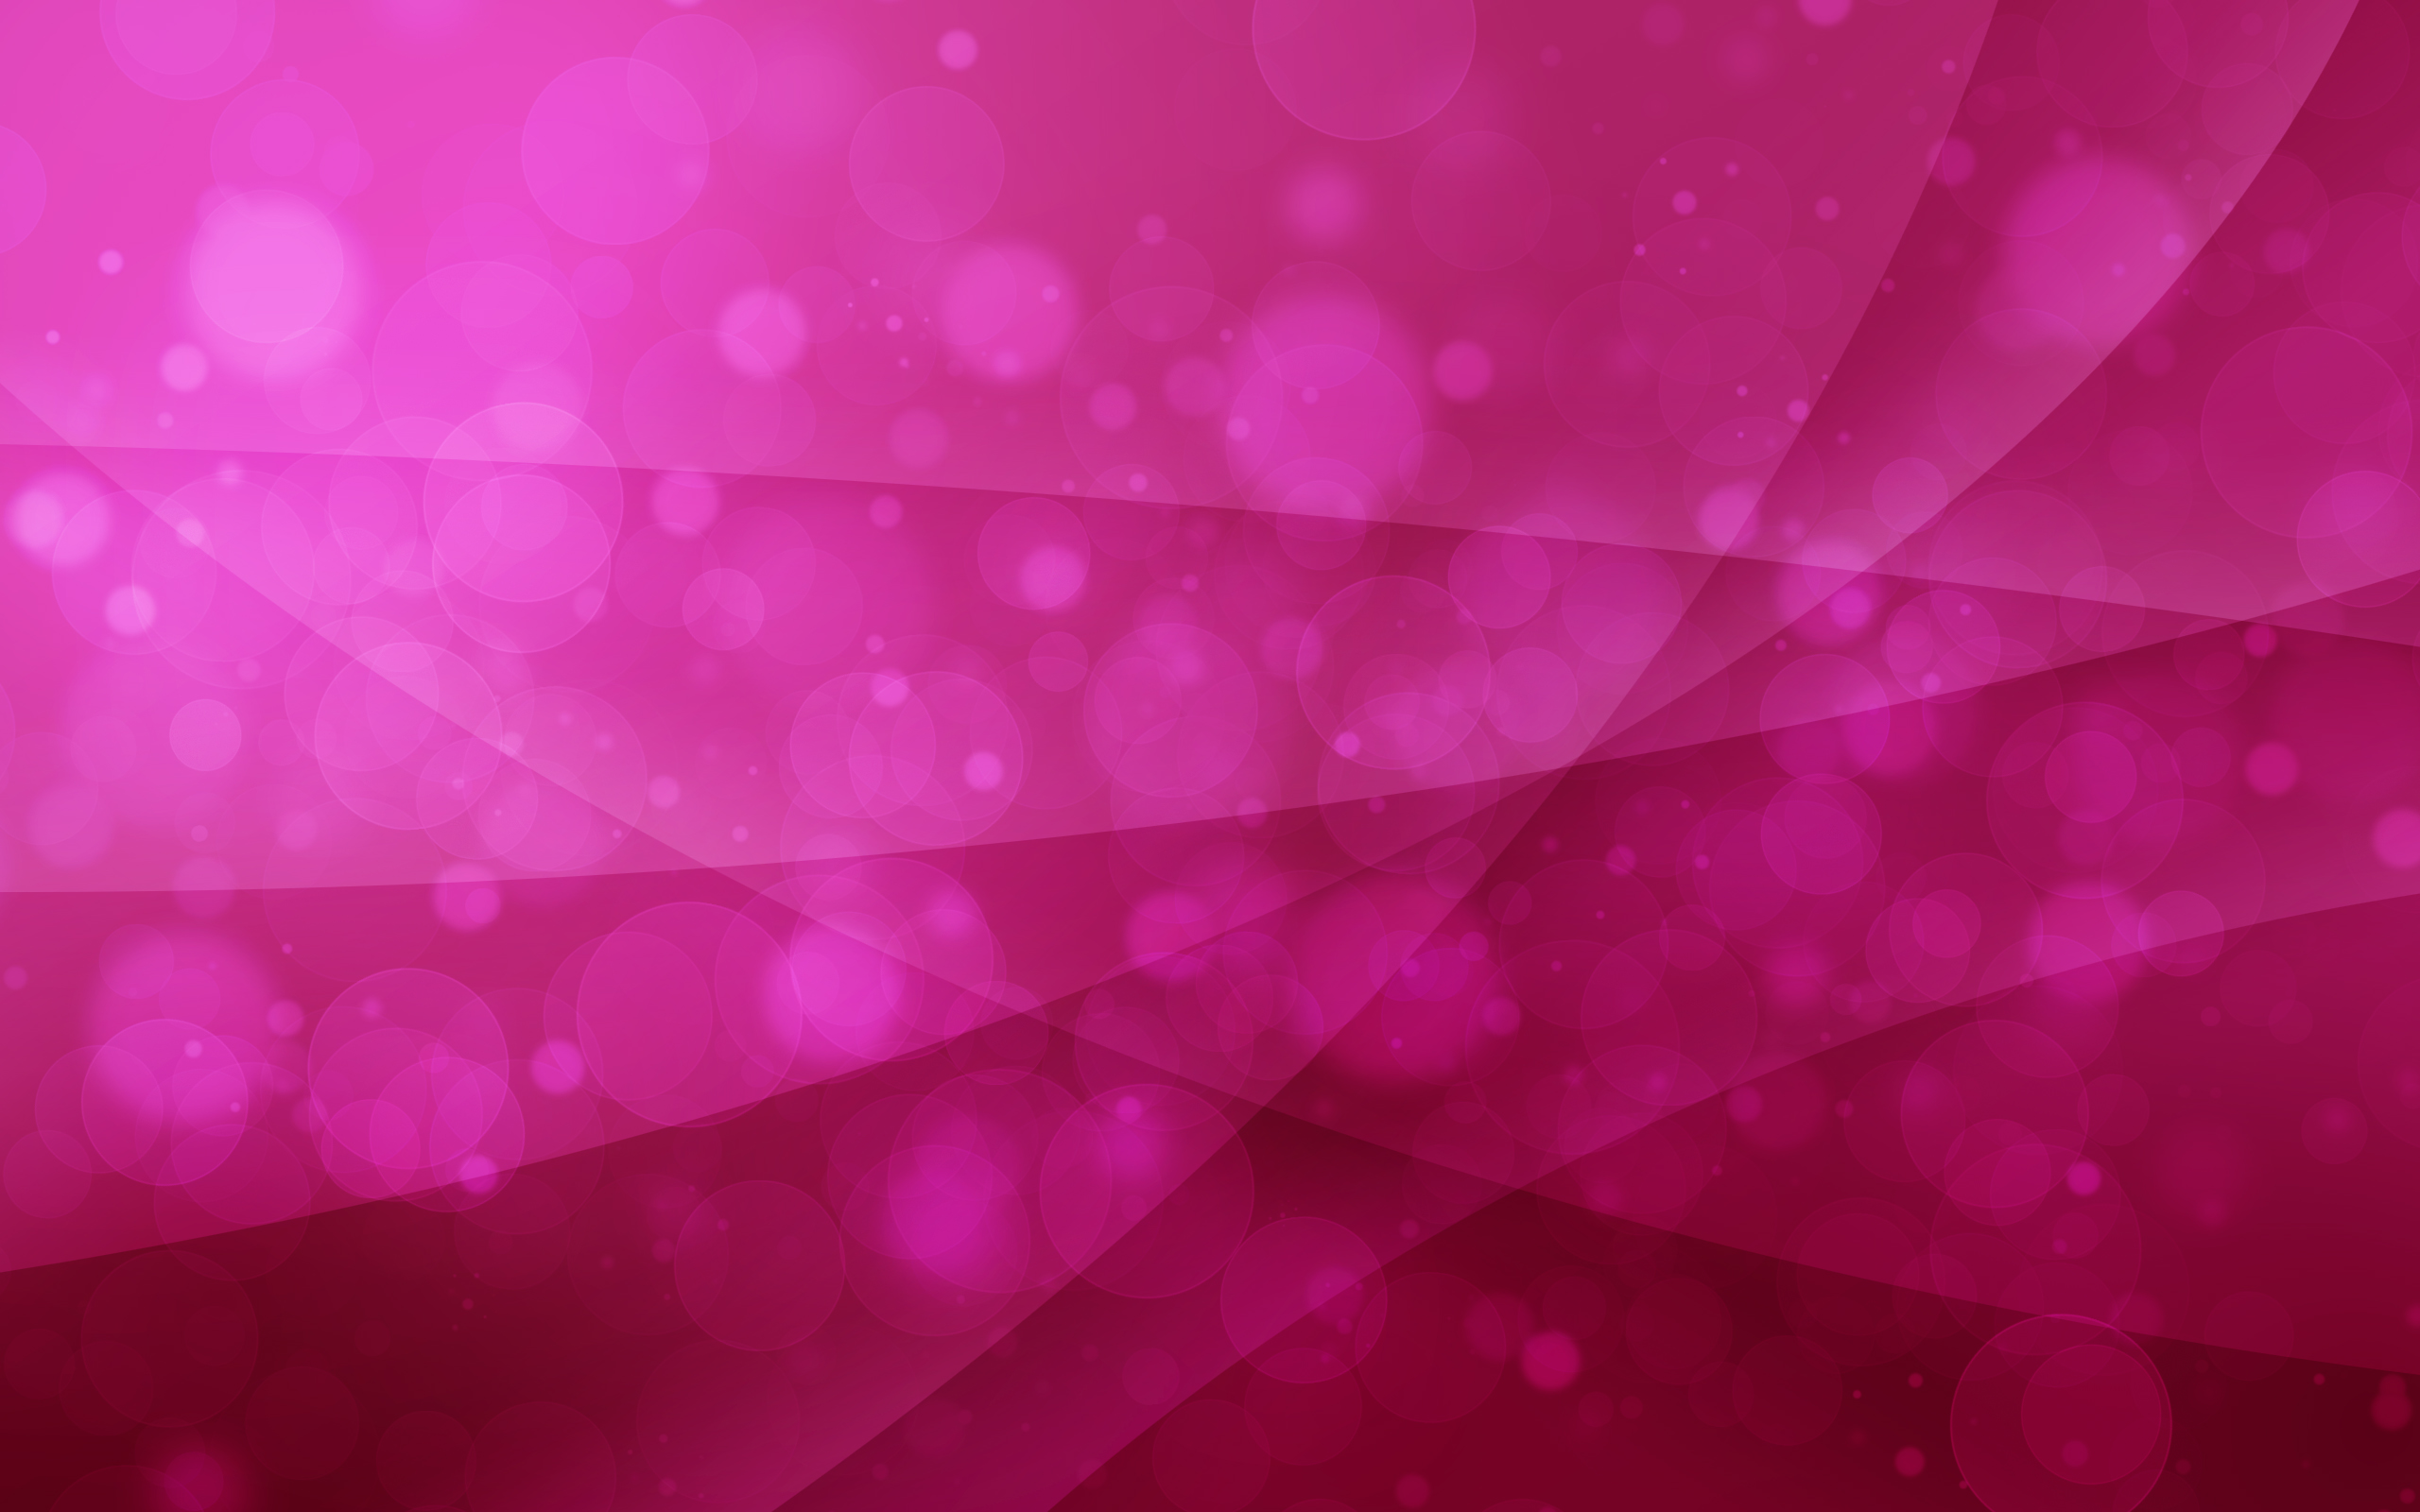 Abstract Waves Backgrounds by mirhaziq on DeviantArt